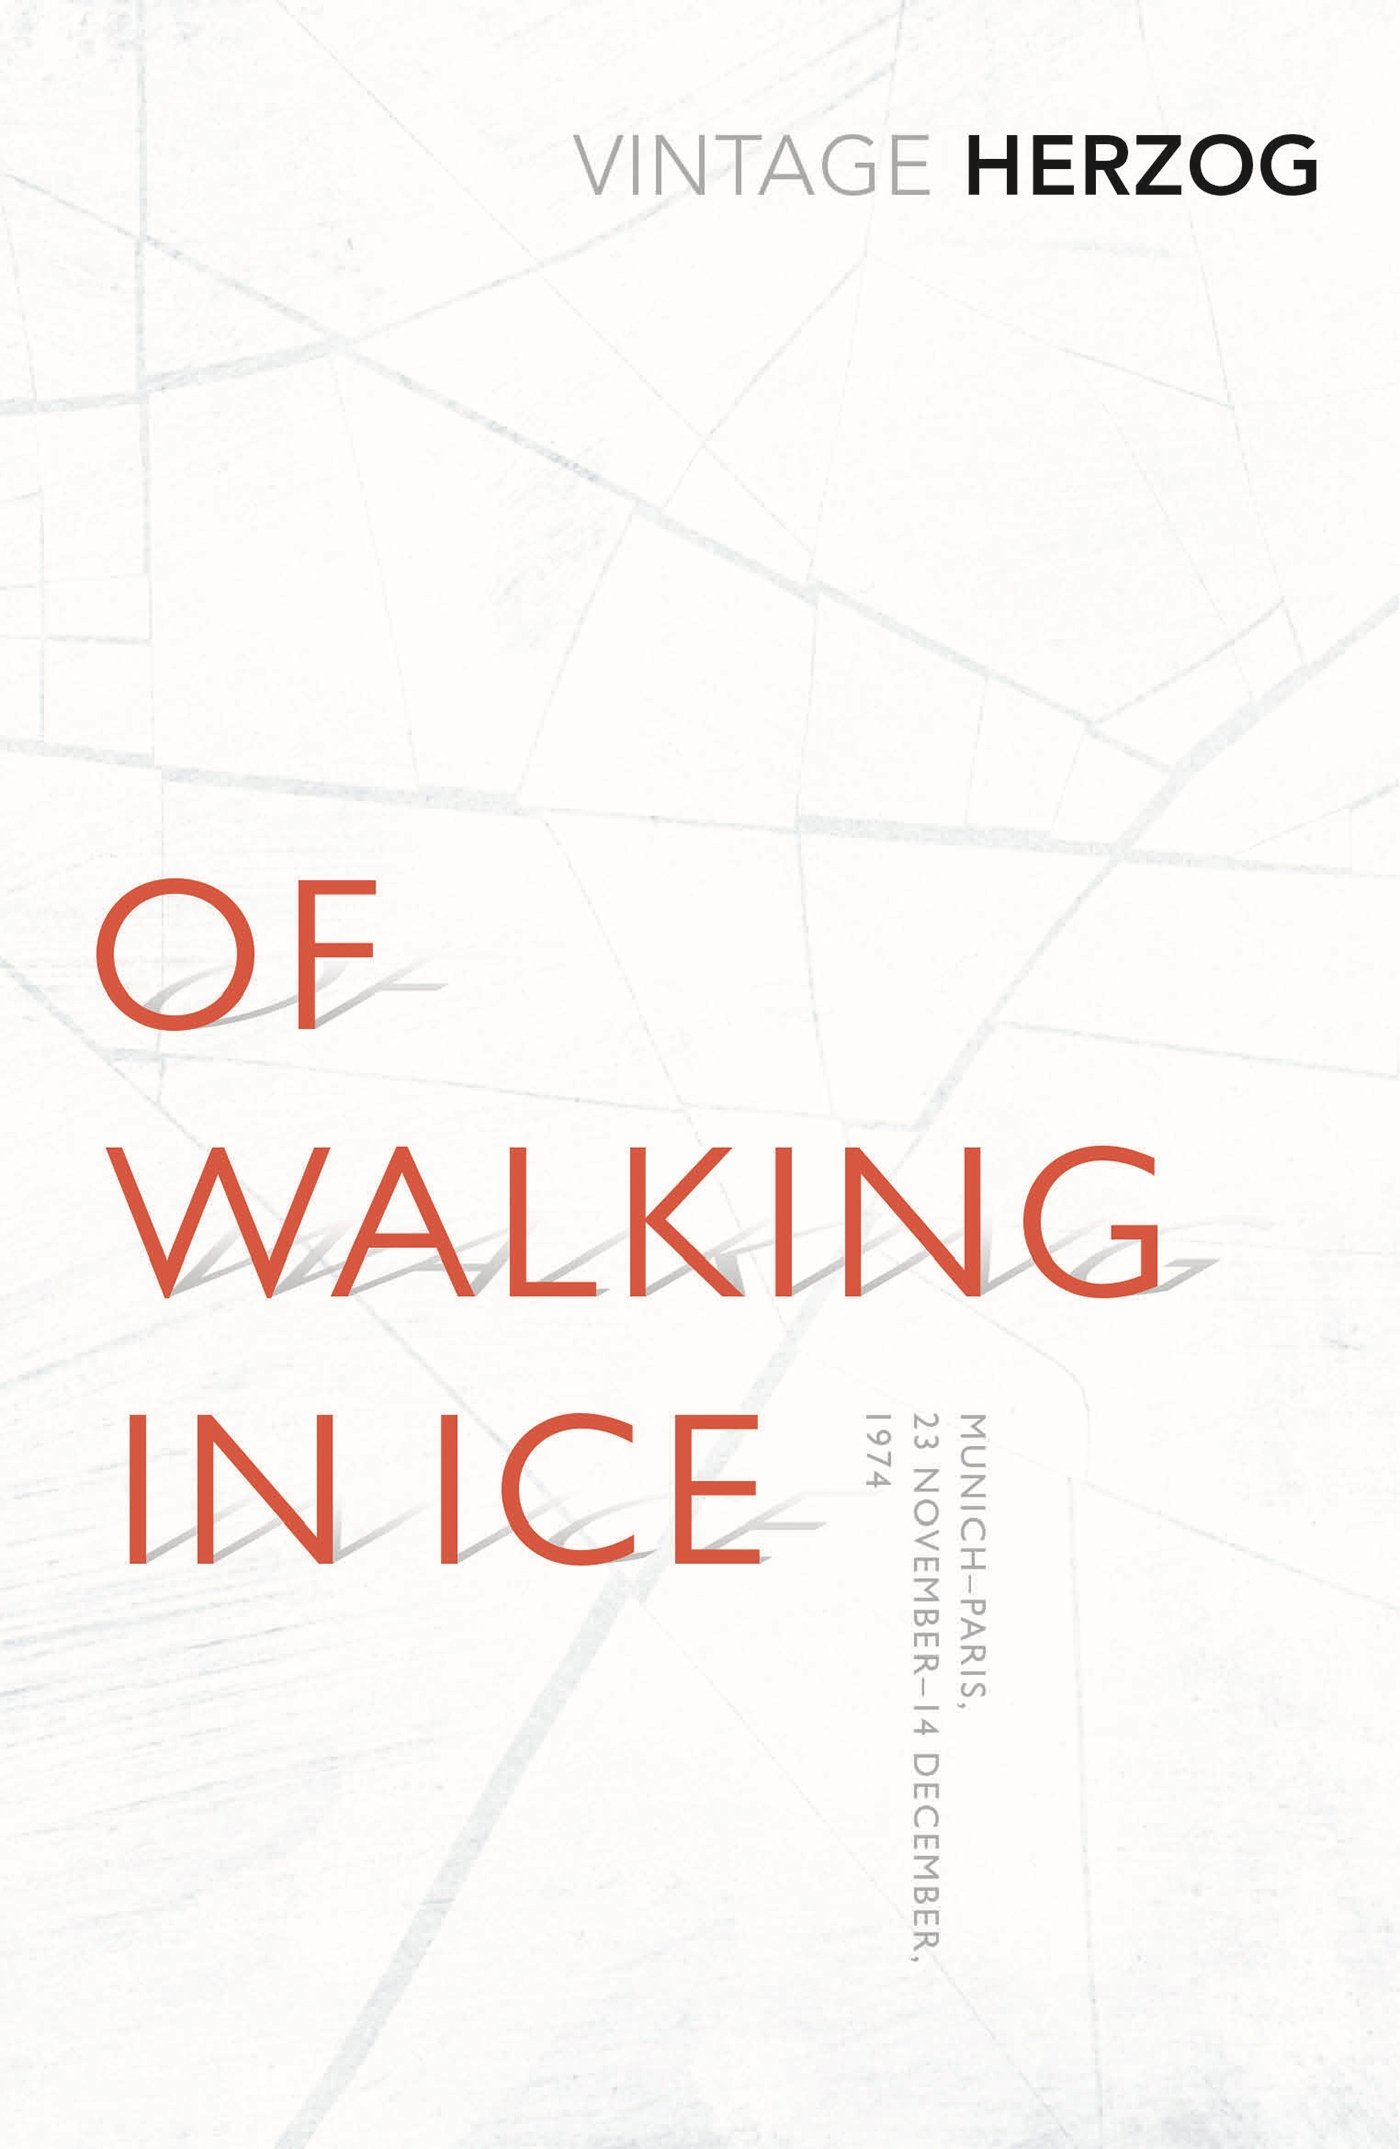 of-walking-in-ice-munich-paris-23-november-14-december-1974-vintage-classics